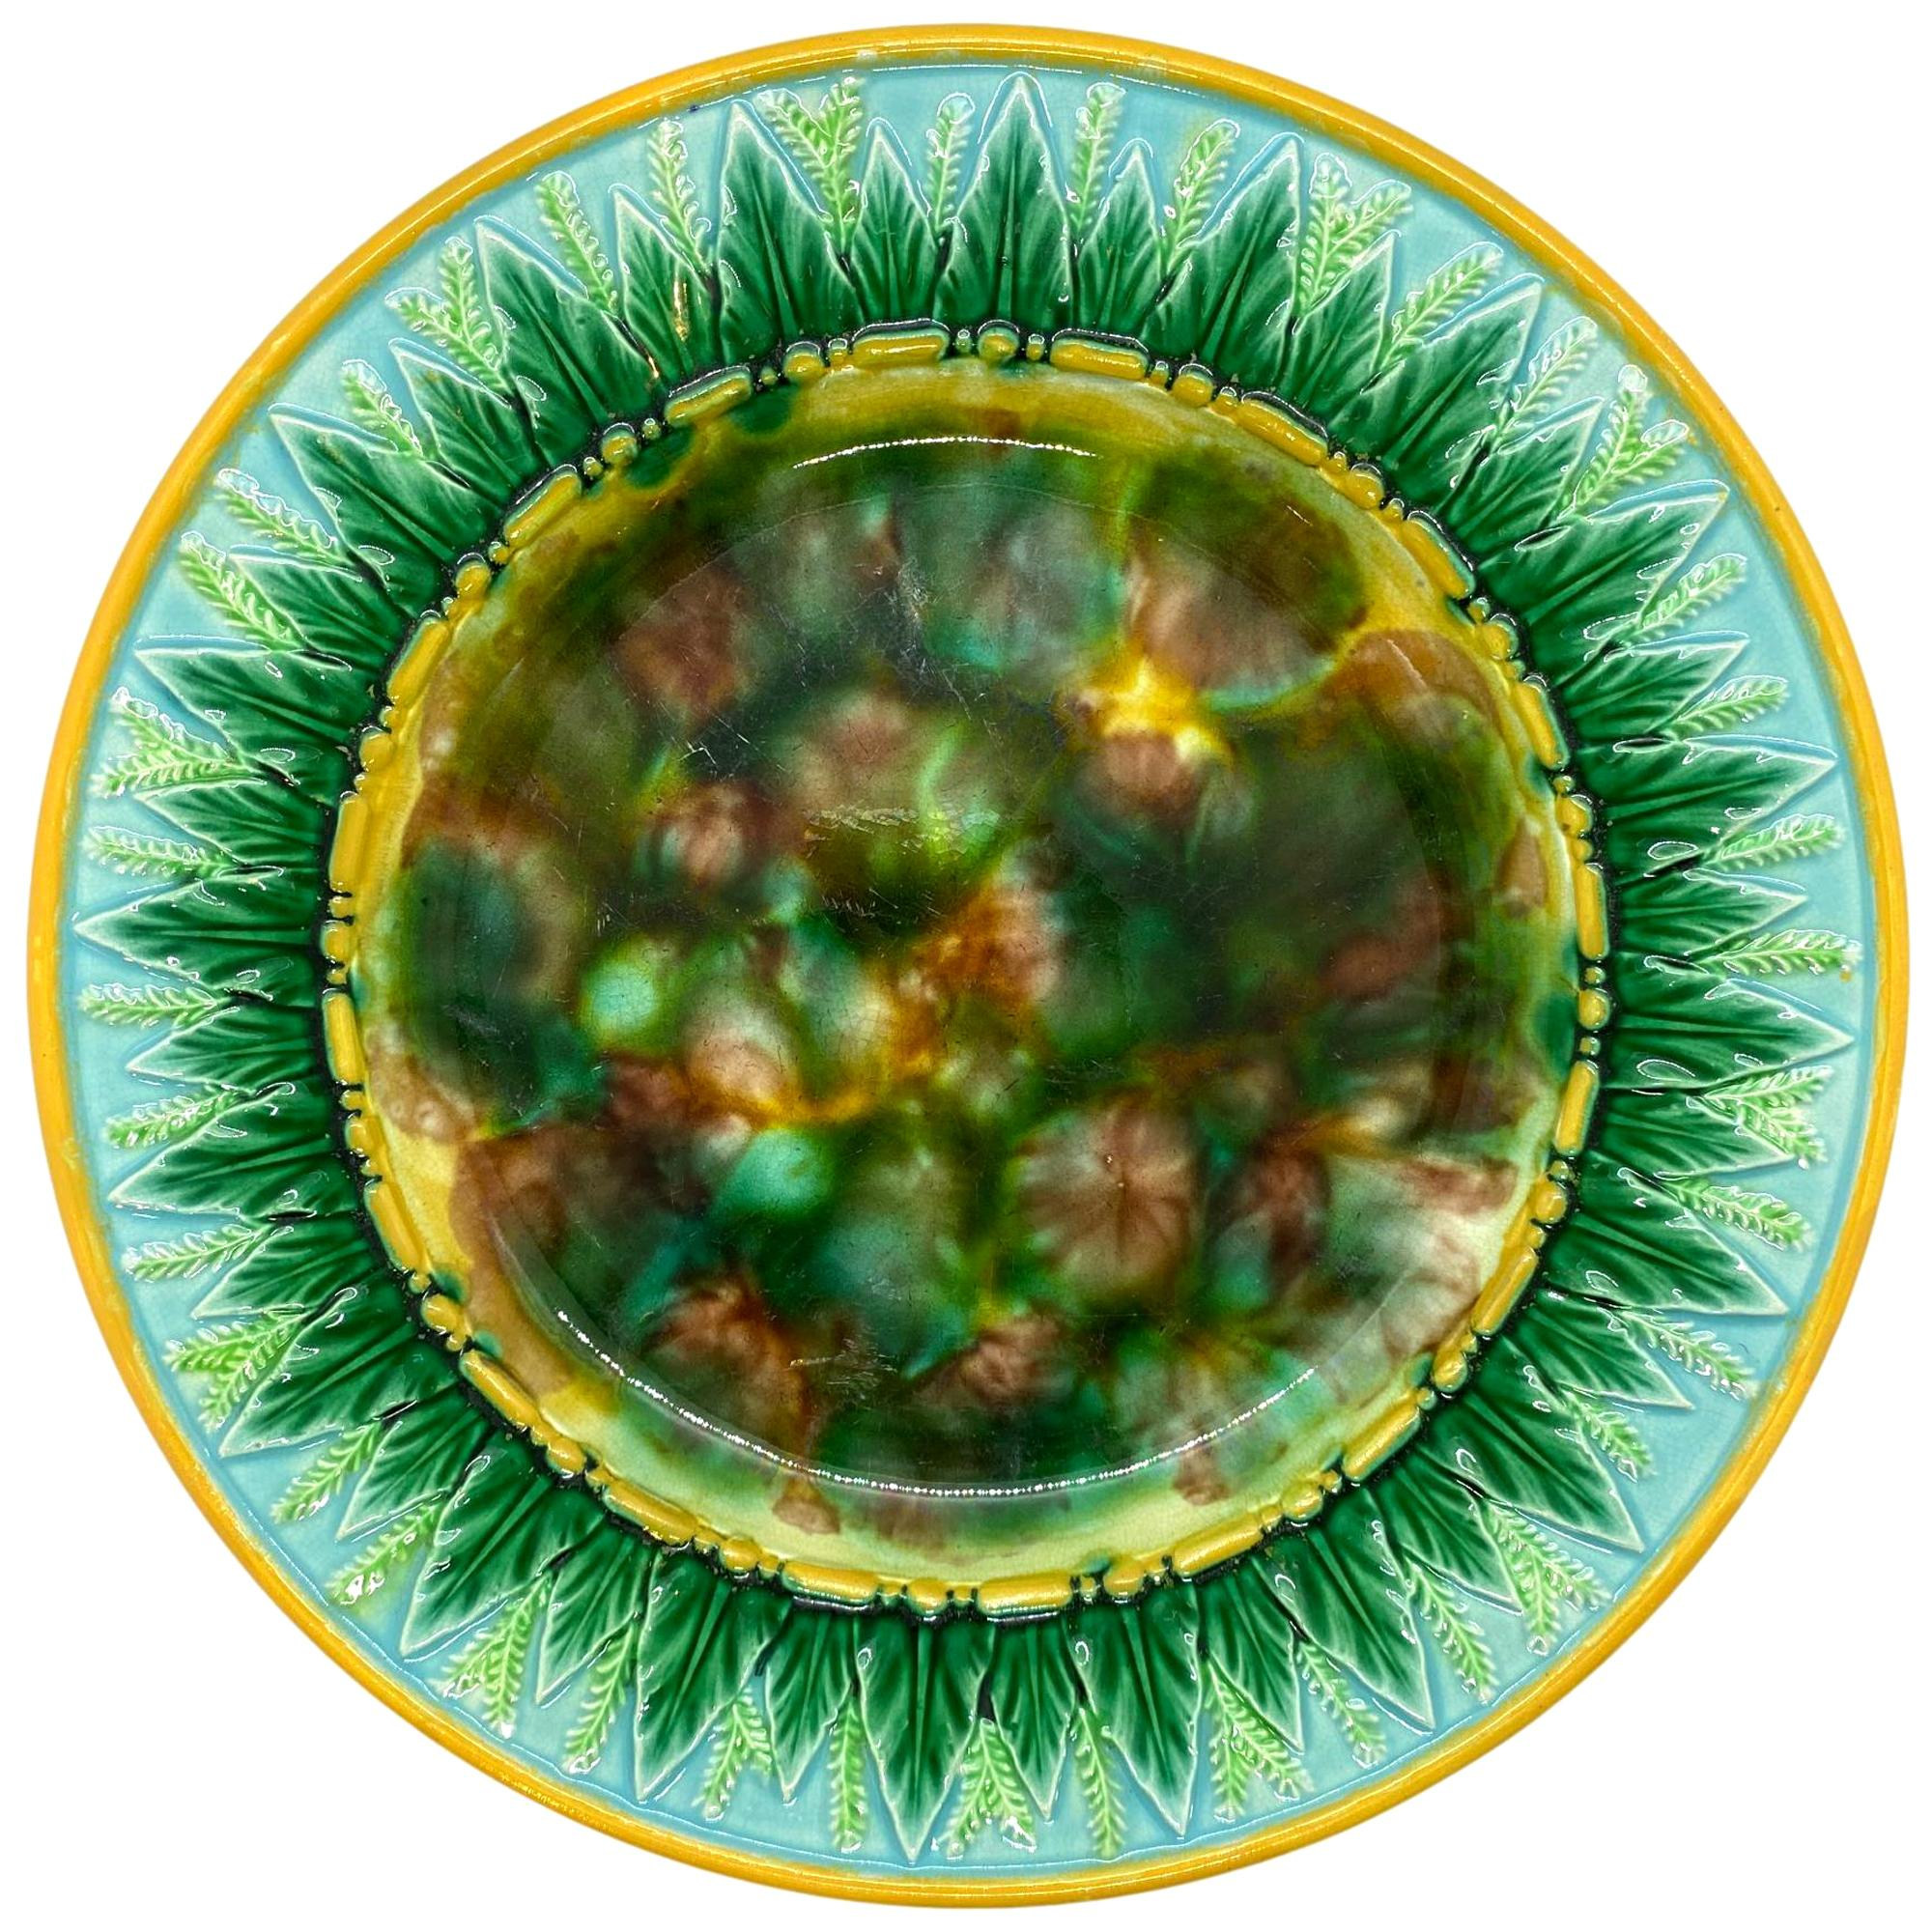 George Jones Majolica Plate with Mottled Center, Green Leaves on Turquoise